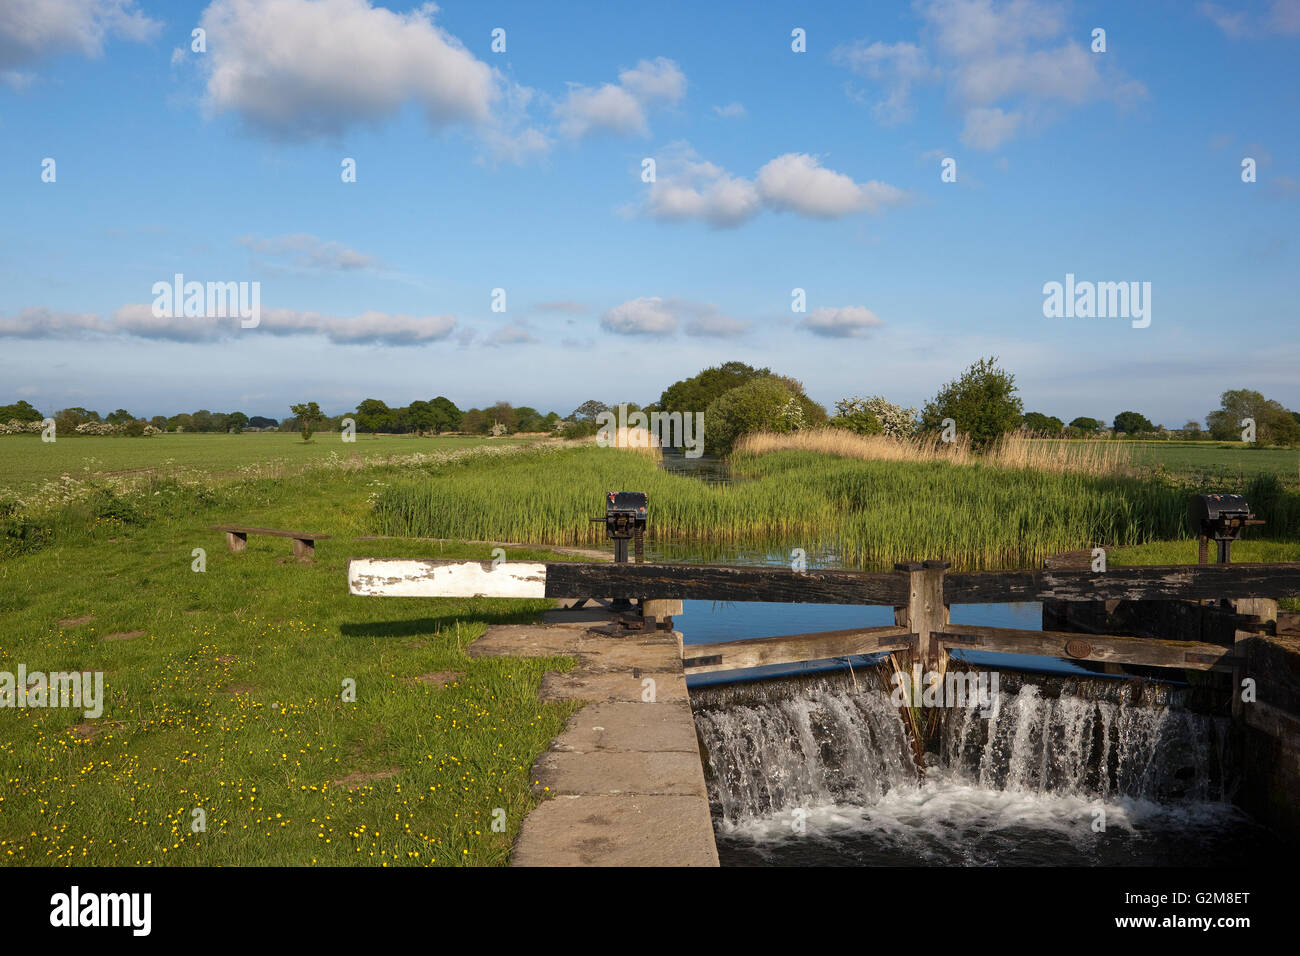 Water pouring through canal lock gates beside a rural towpath with benches and picnic area in an agricultural landscape - Stock Image